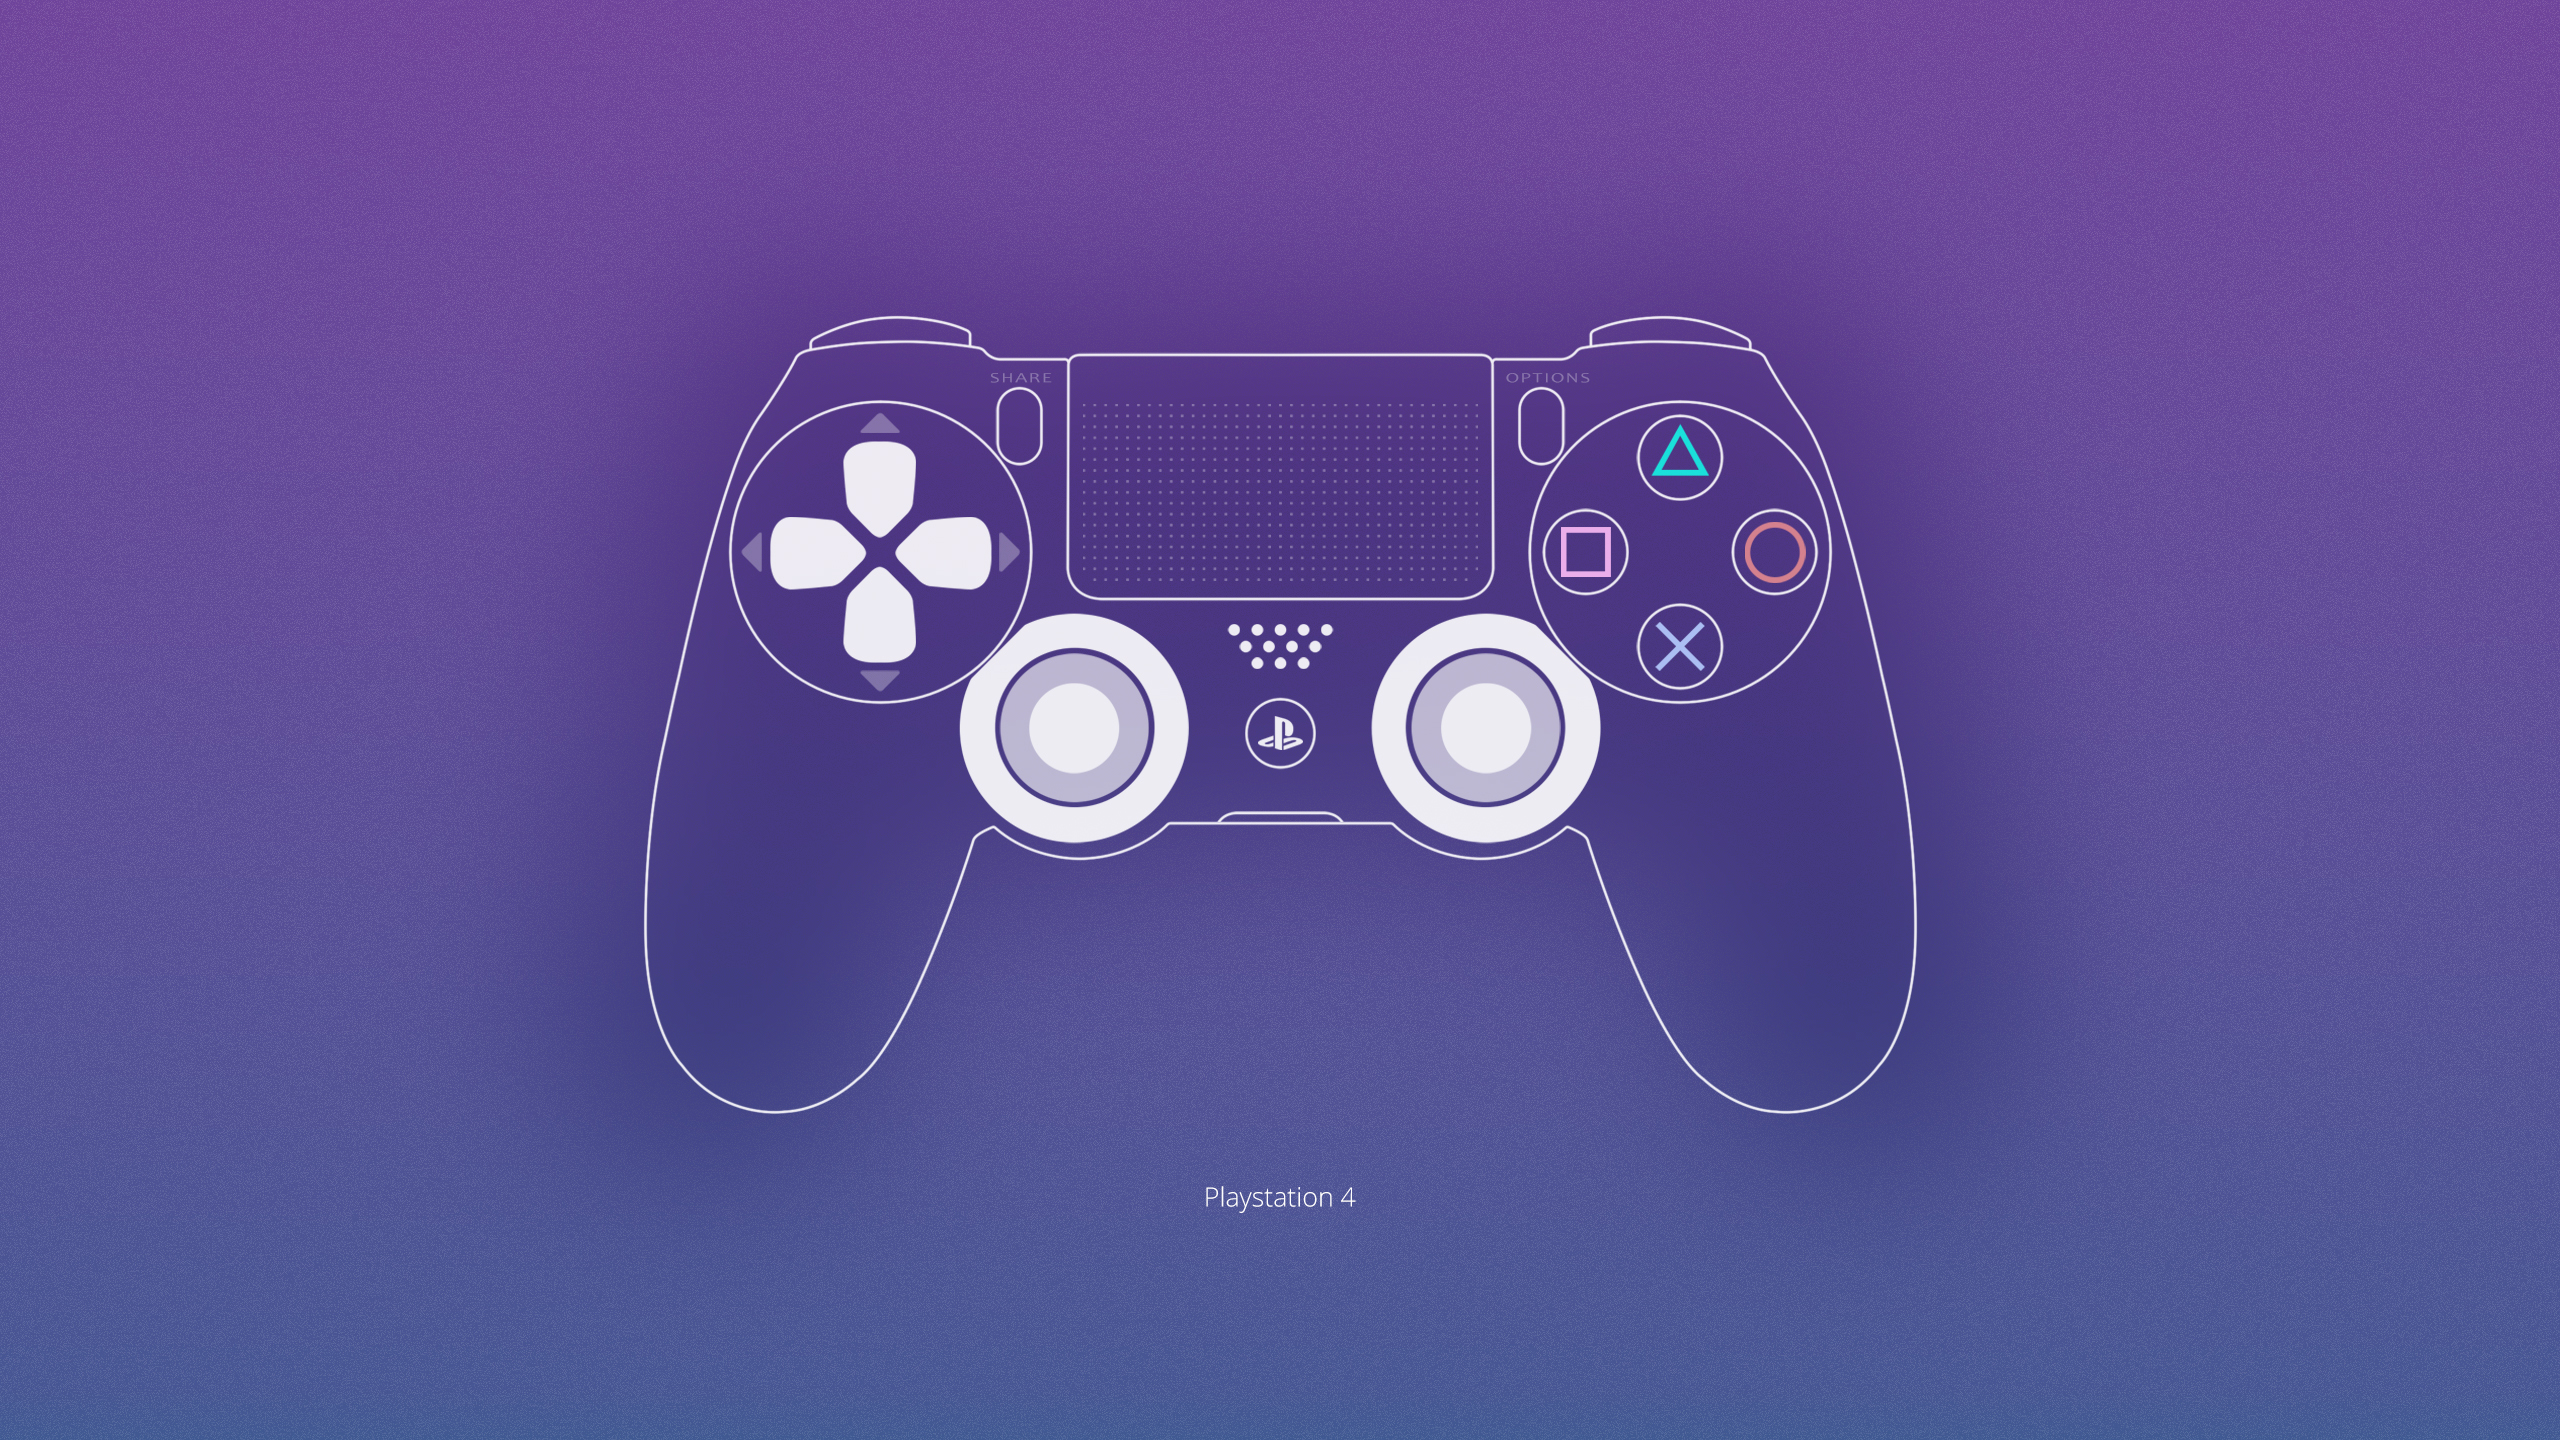 Pictures Gamepad Dualshock Console Ps4 Computers Painting